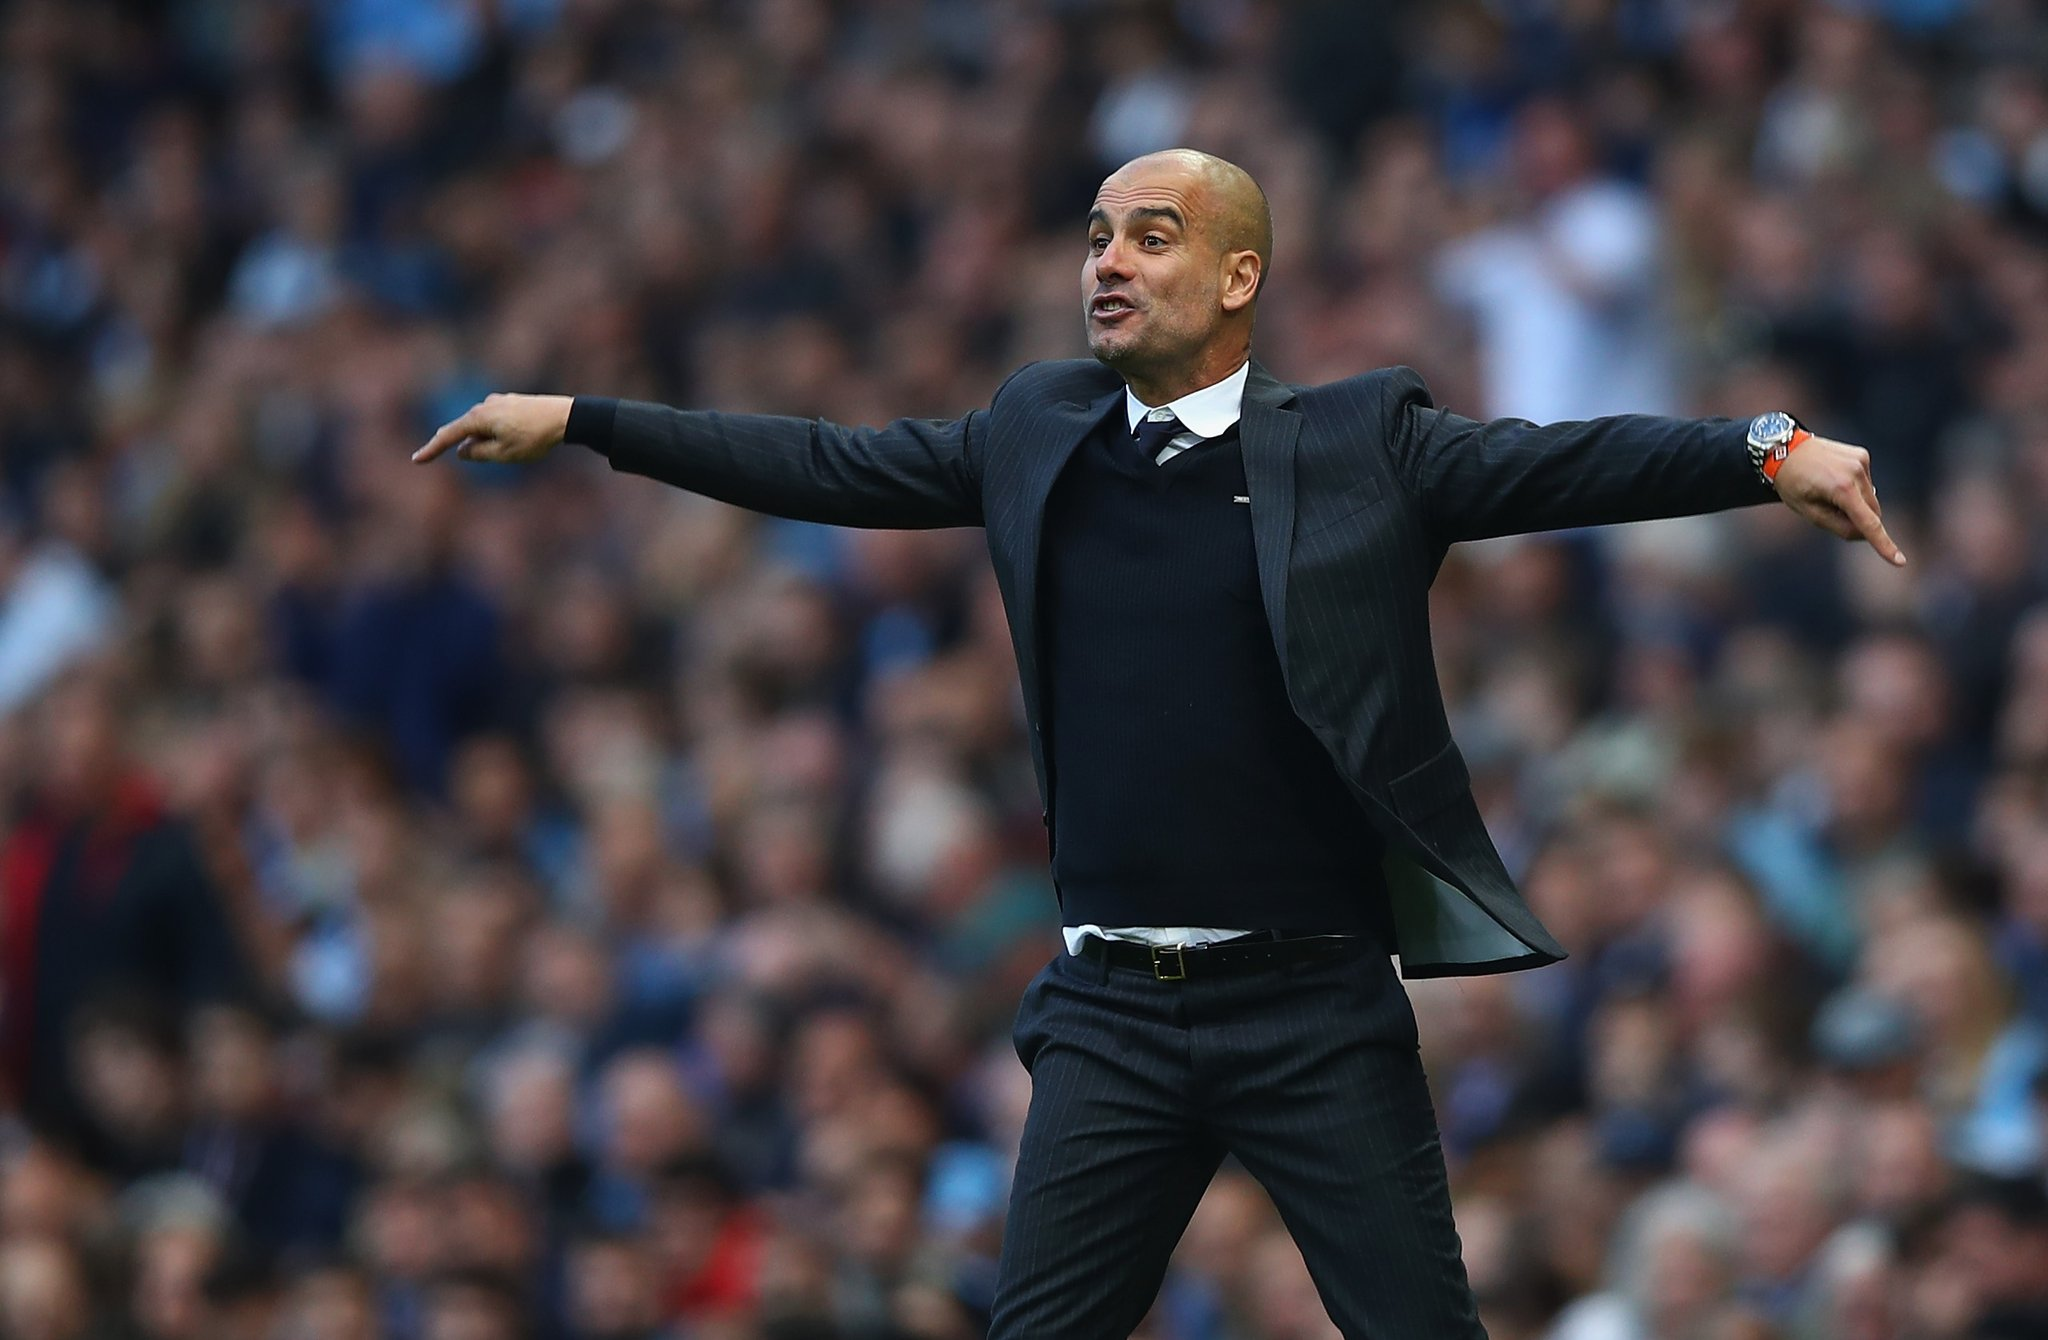 Guardiola Rules De Bruyne Out Of Manchester Derby, Vows To Win